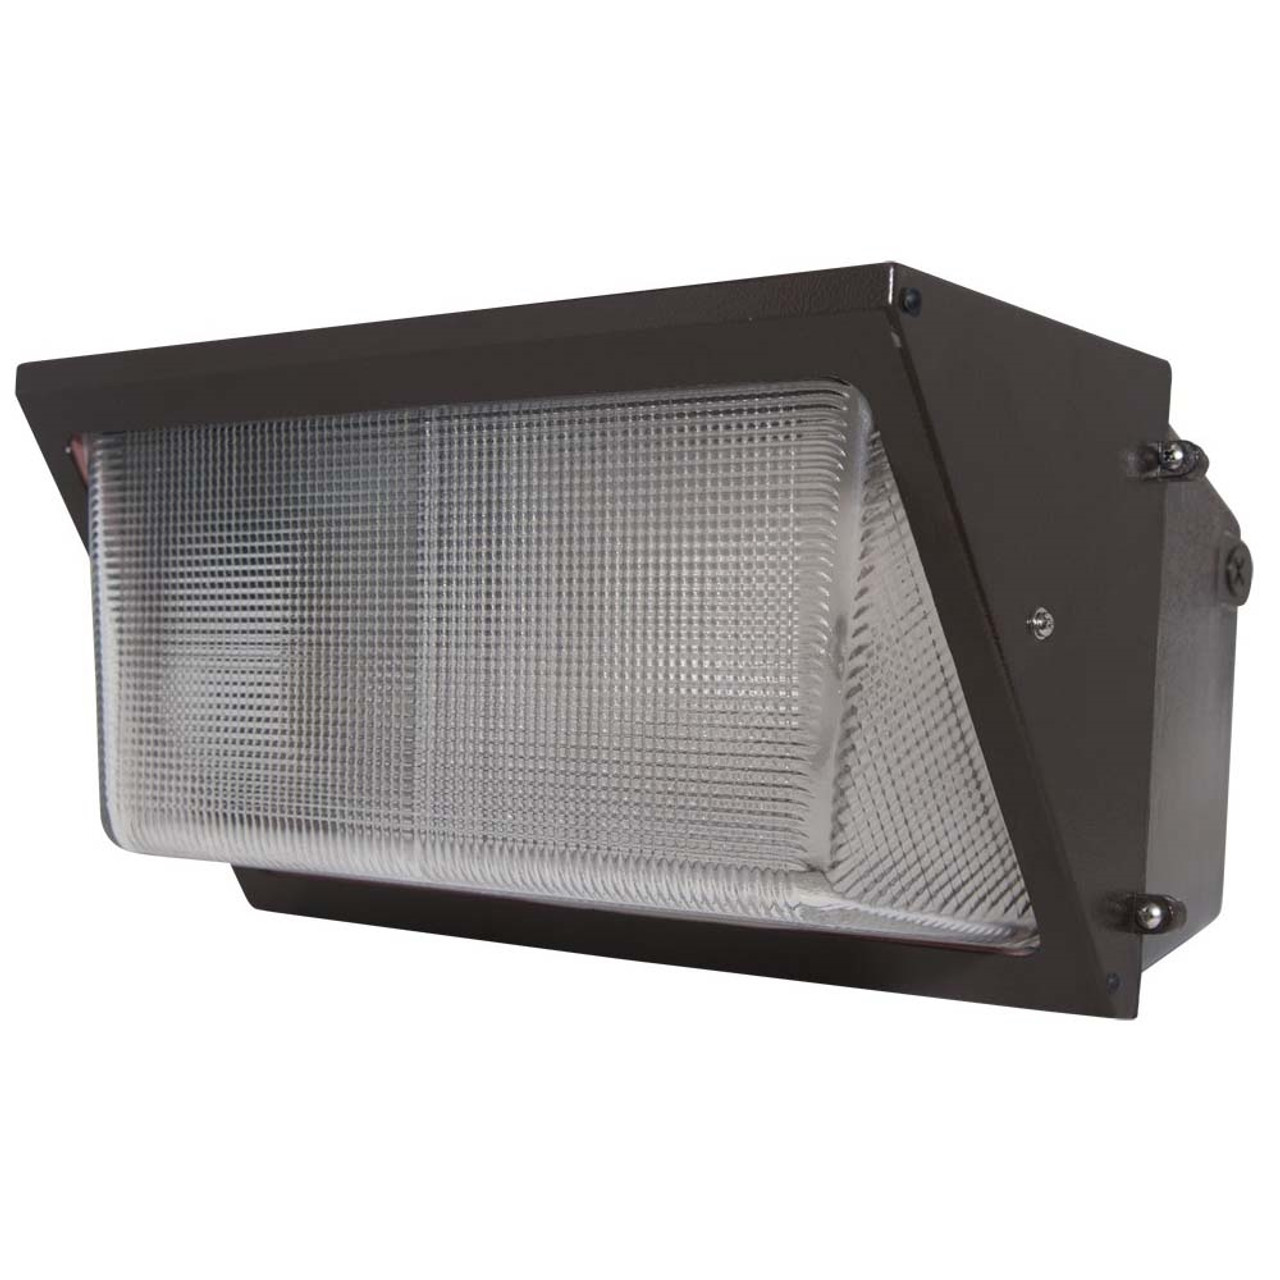 Led security light wall pack led wall pack security light select your wattage aloadofball Choice Image